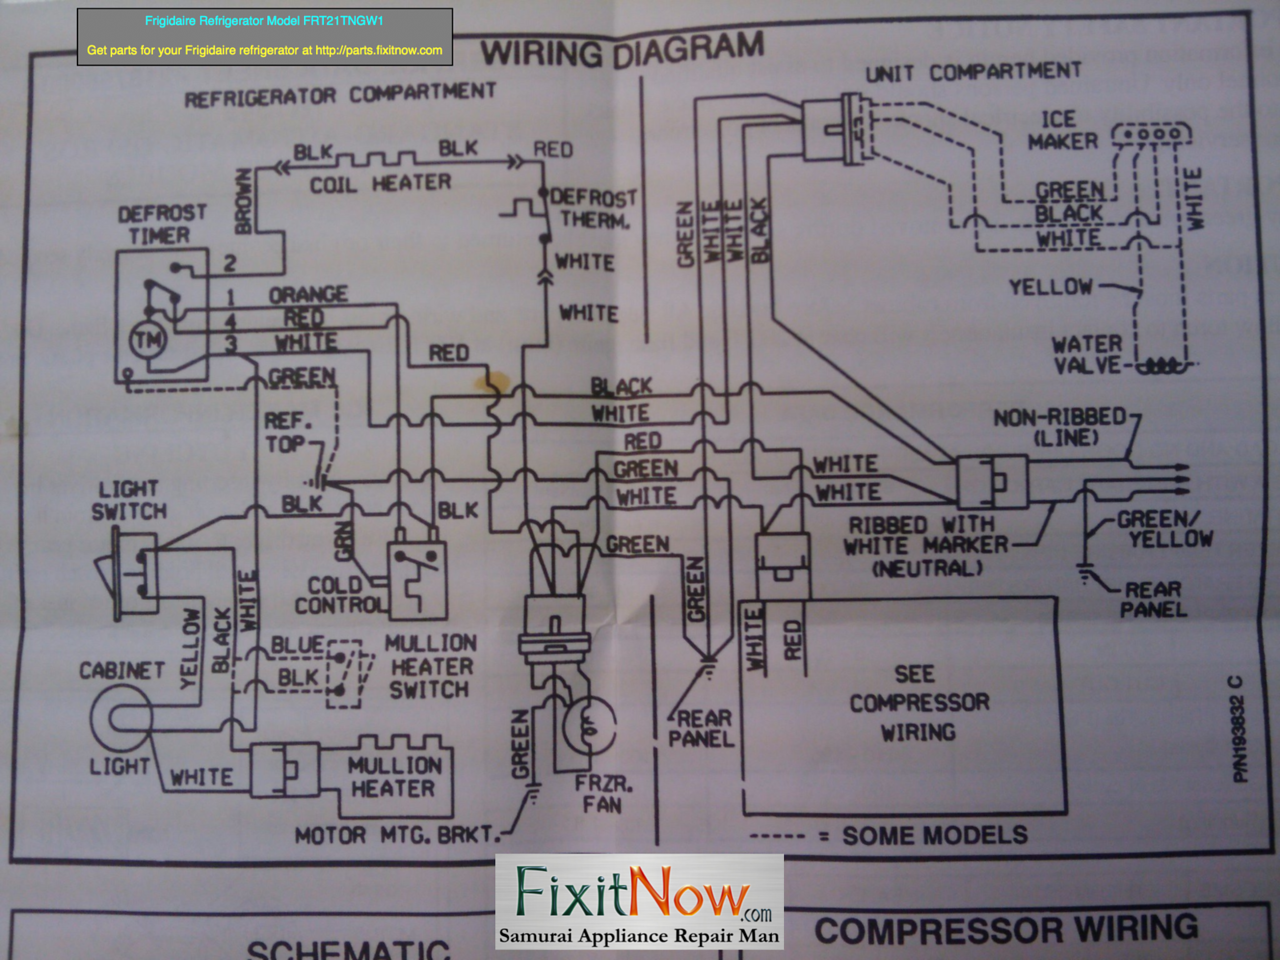 Groovy Frigidaire Wire Diagram Wiring Diagram Wiring Cloud Hisonuggs Outletorg